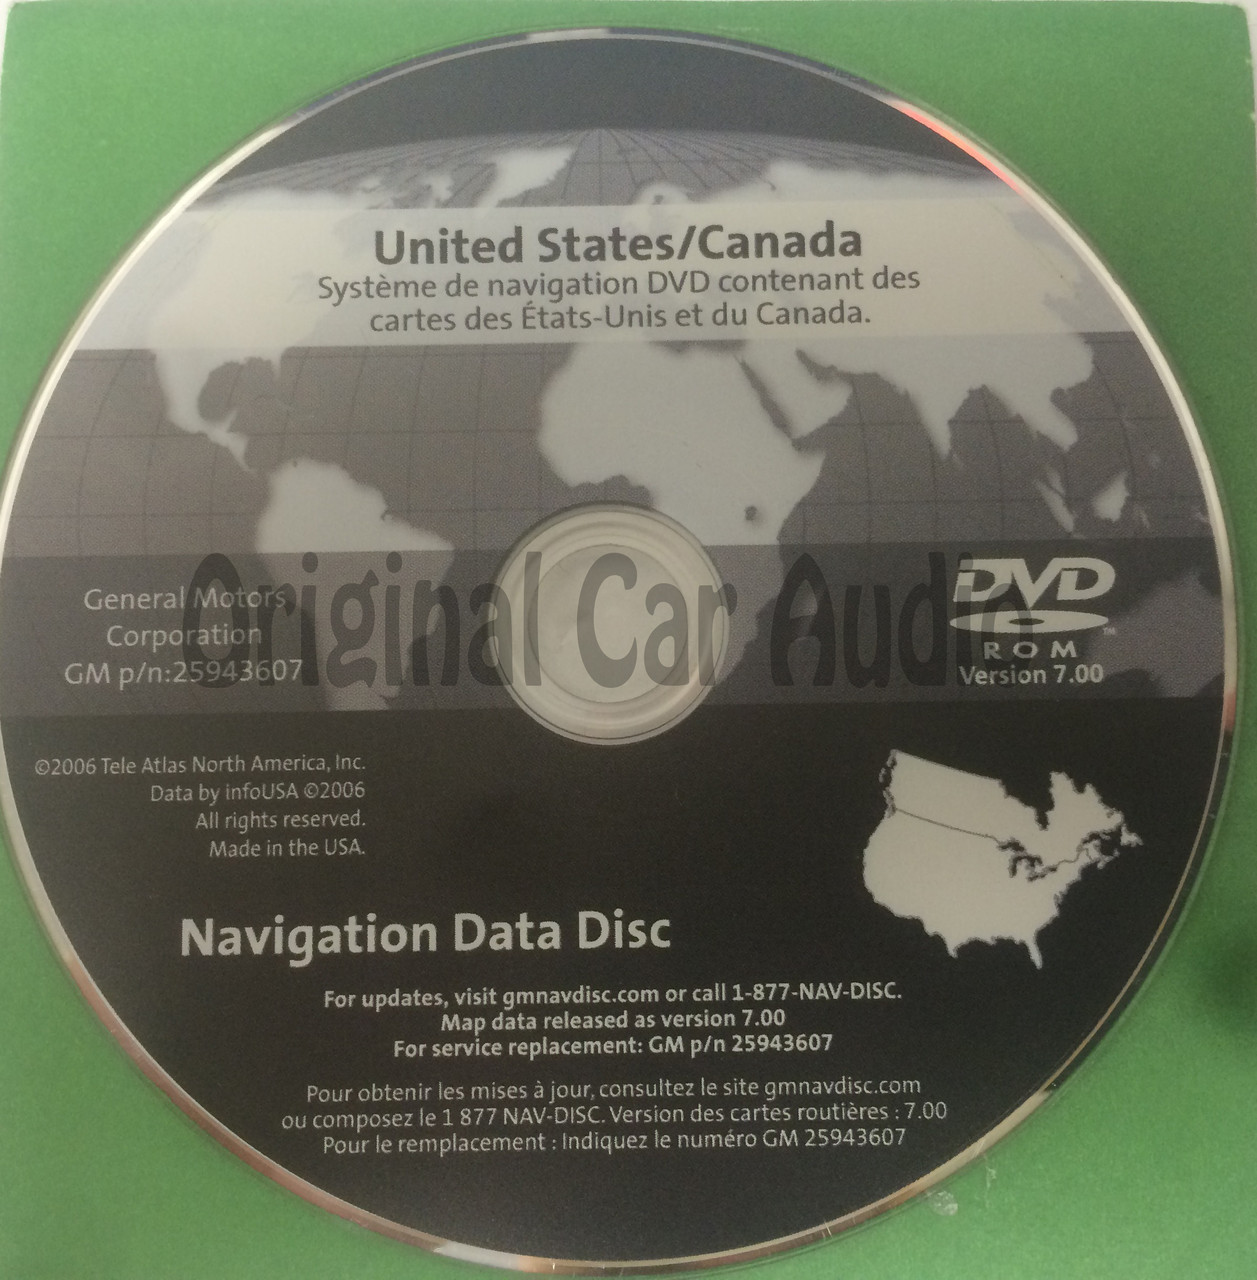 GM Satellite Navigation System GPS DVD Drive Disc 25943607 Version ...